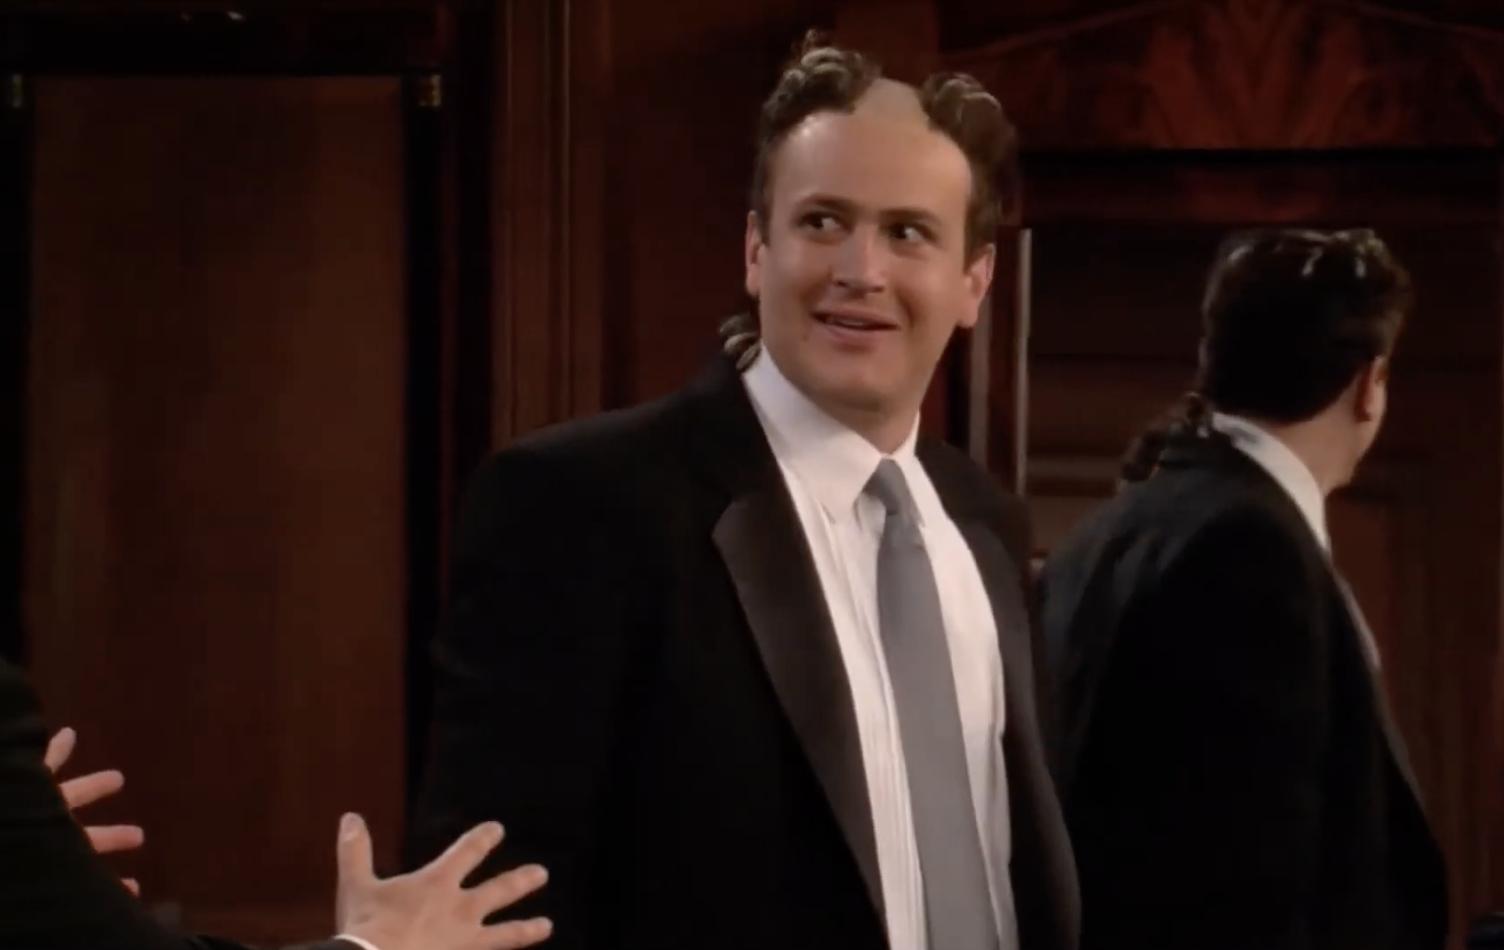 Marshal with a partially shaved head right before his wedding to Lily